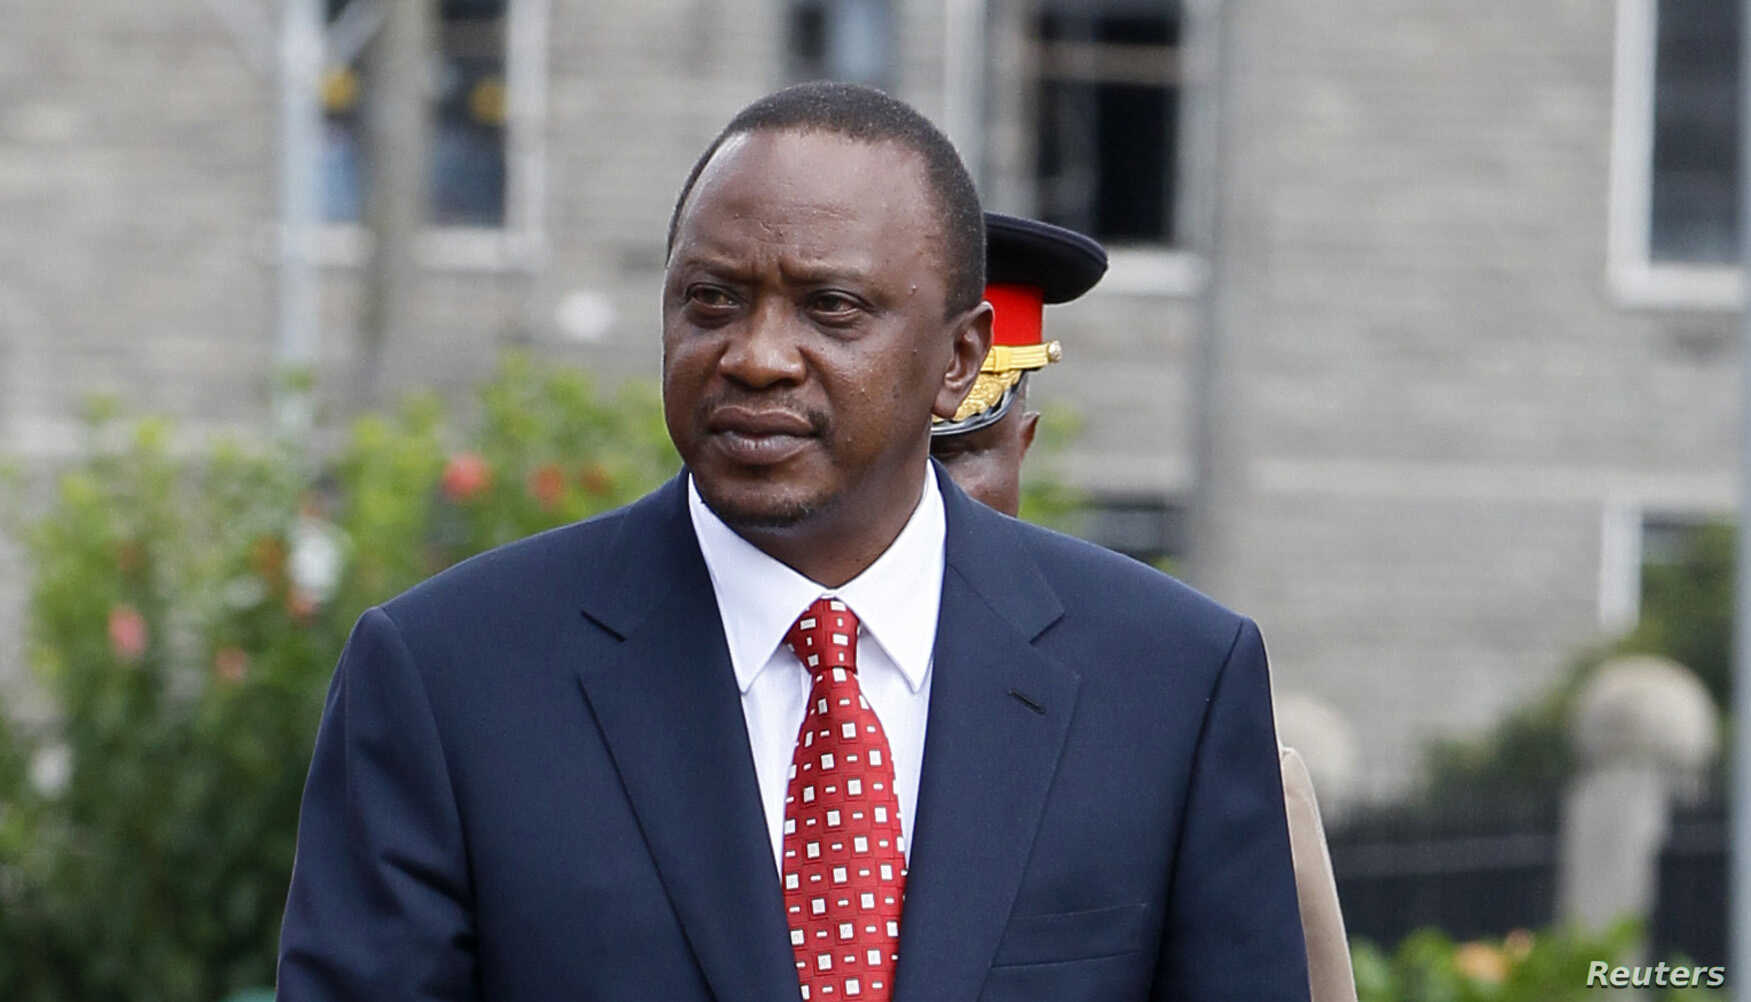 Kenya President: Al-Shabab Will Pay 'Heavy Price' | Voice of ...